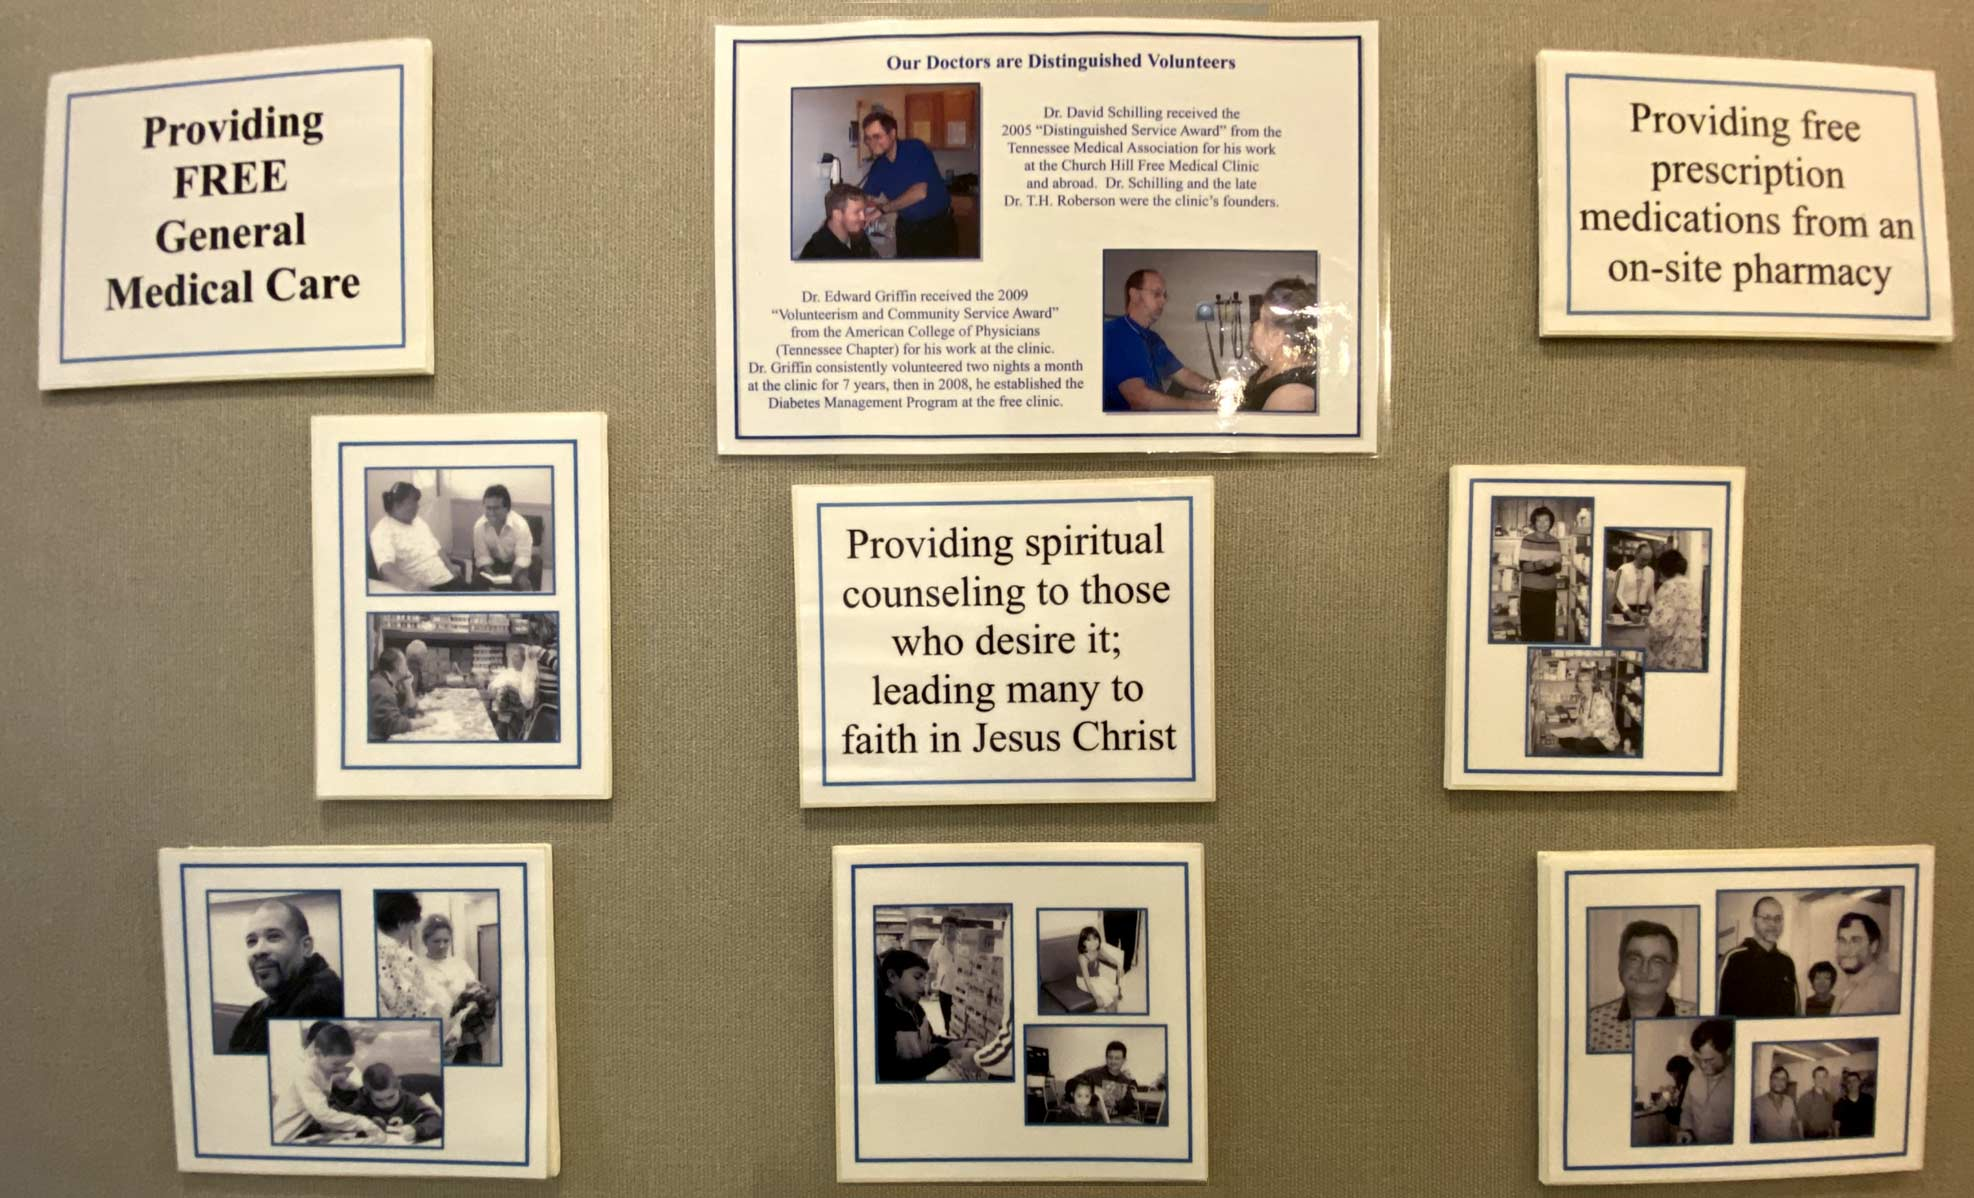 Church Hill Medical Mission history